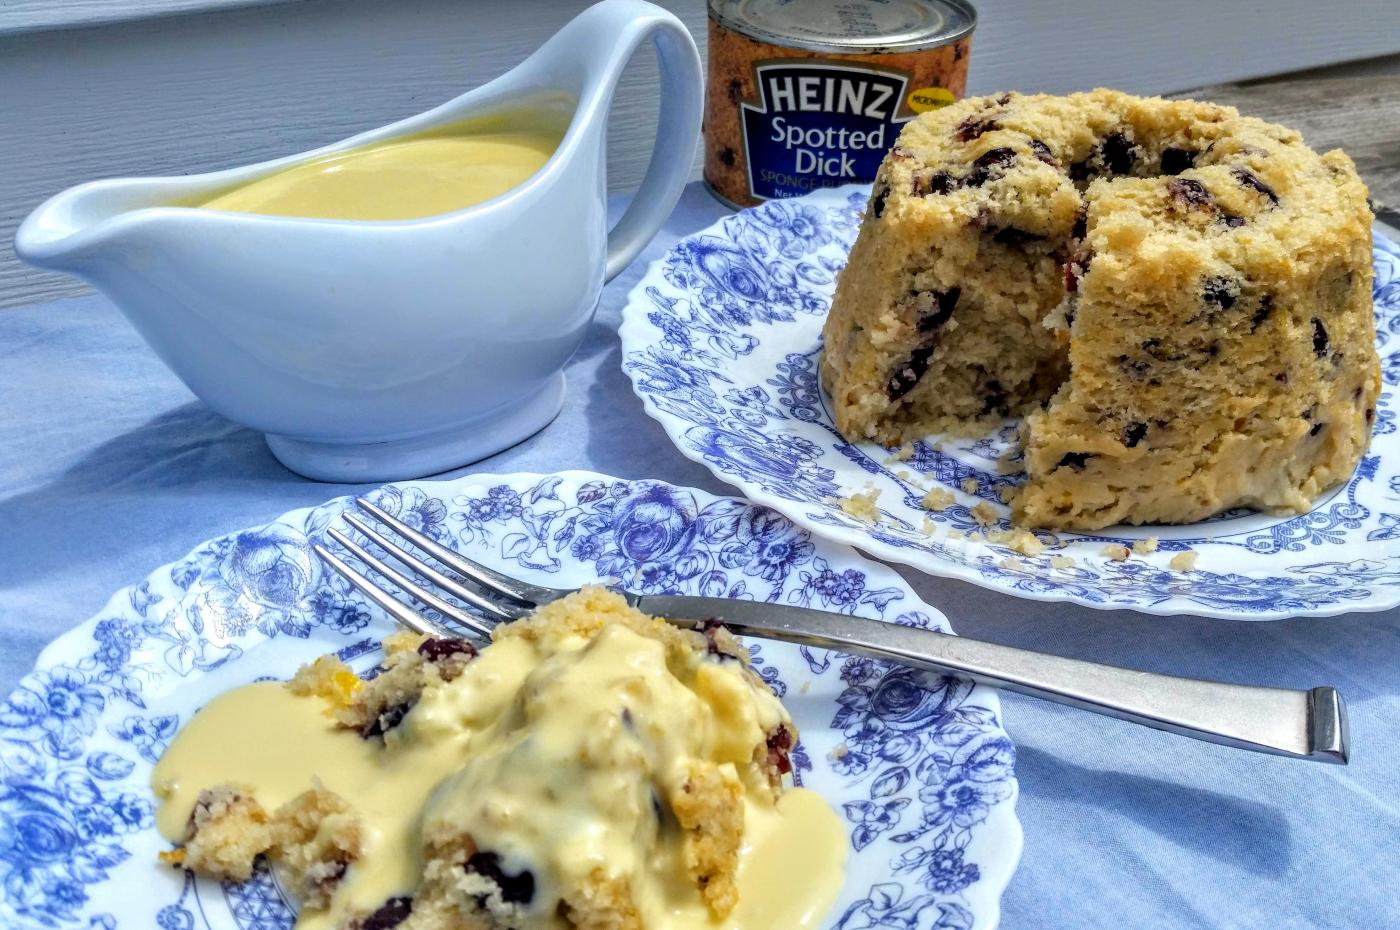 Stephanie displays her steamed Spotted Dick pudding on blue and white china.